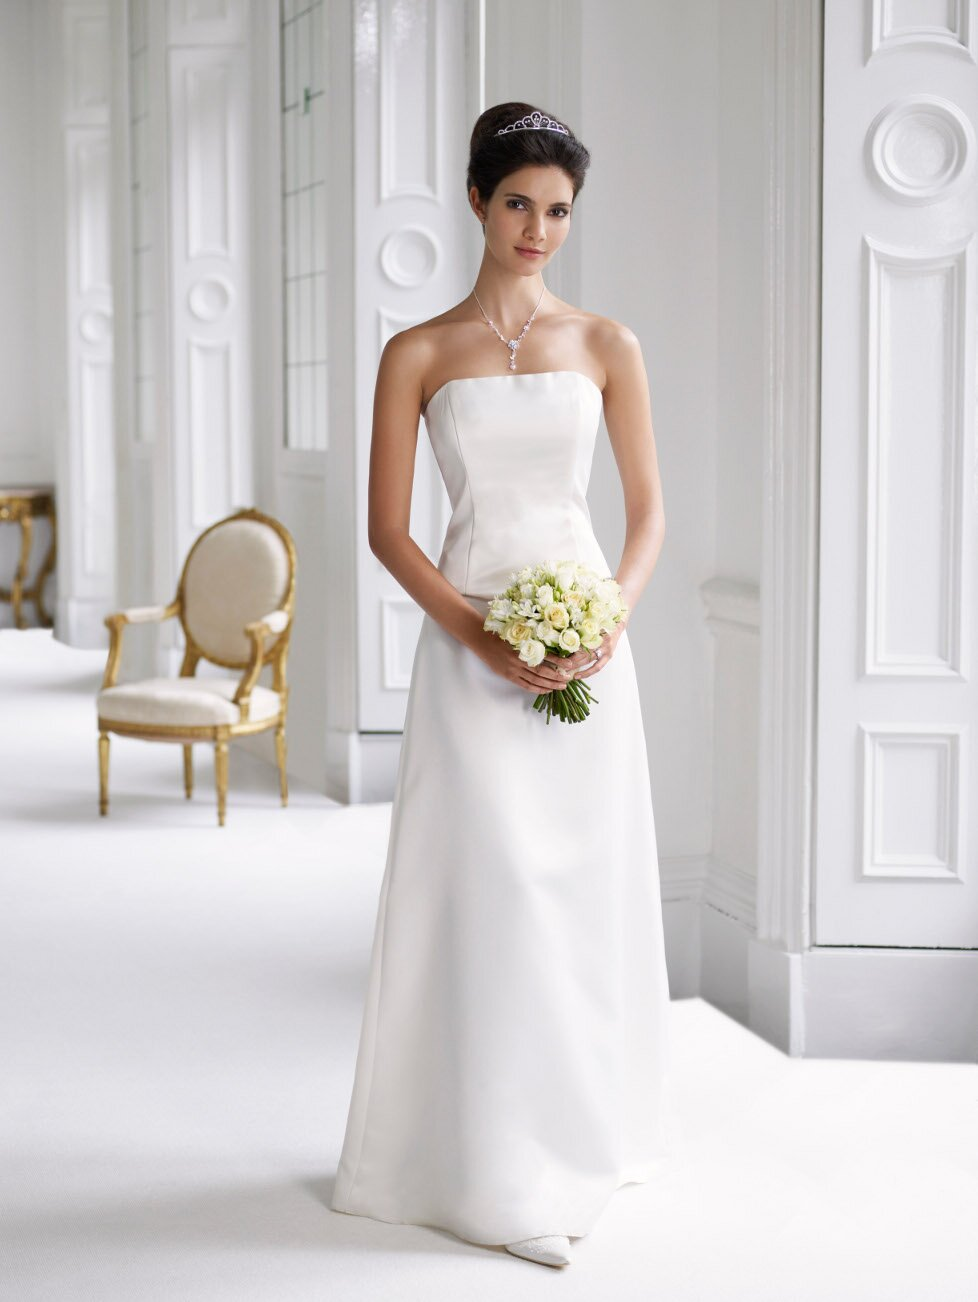 Wedding dresses for small weddings Photo - 1